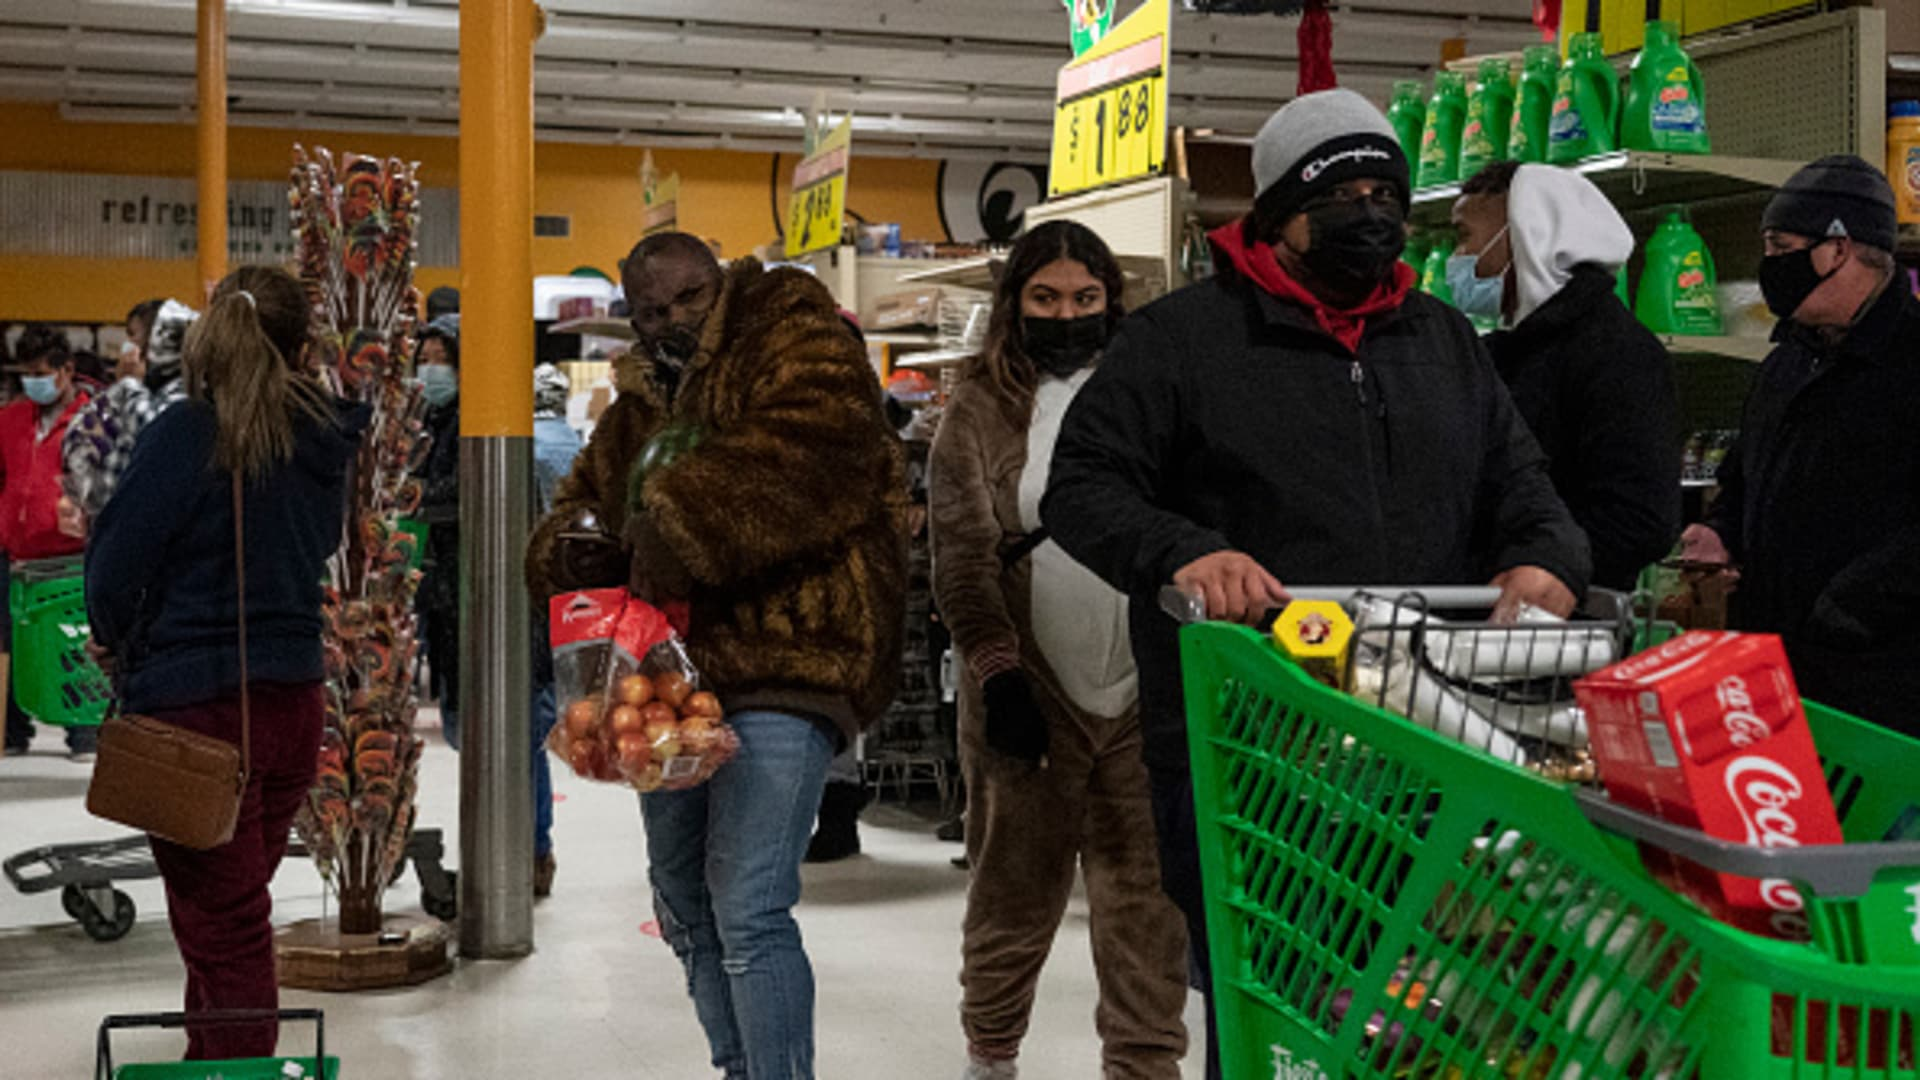 People shop in Fiesta supermarket on February 16, 2021 in Houston, Texas. Winter storm Uri has brought historic cold weather, power outages and traffic accidents to Texas as storms have swept across 26 states with a mix of freezing temperatures and precipitation.